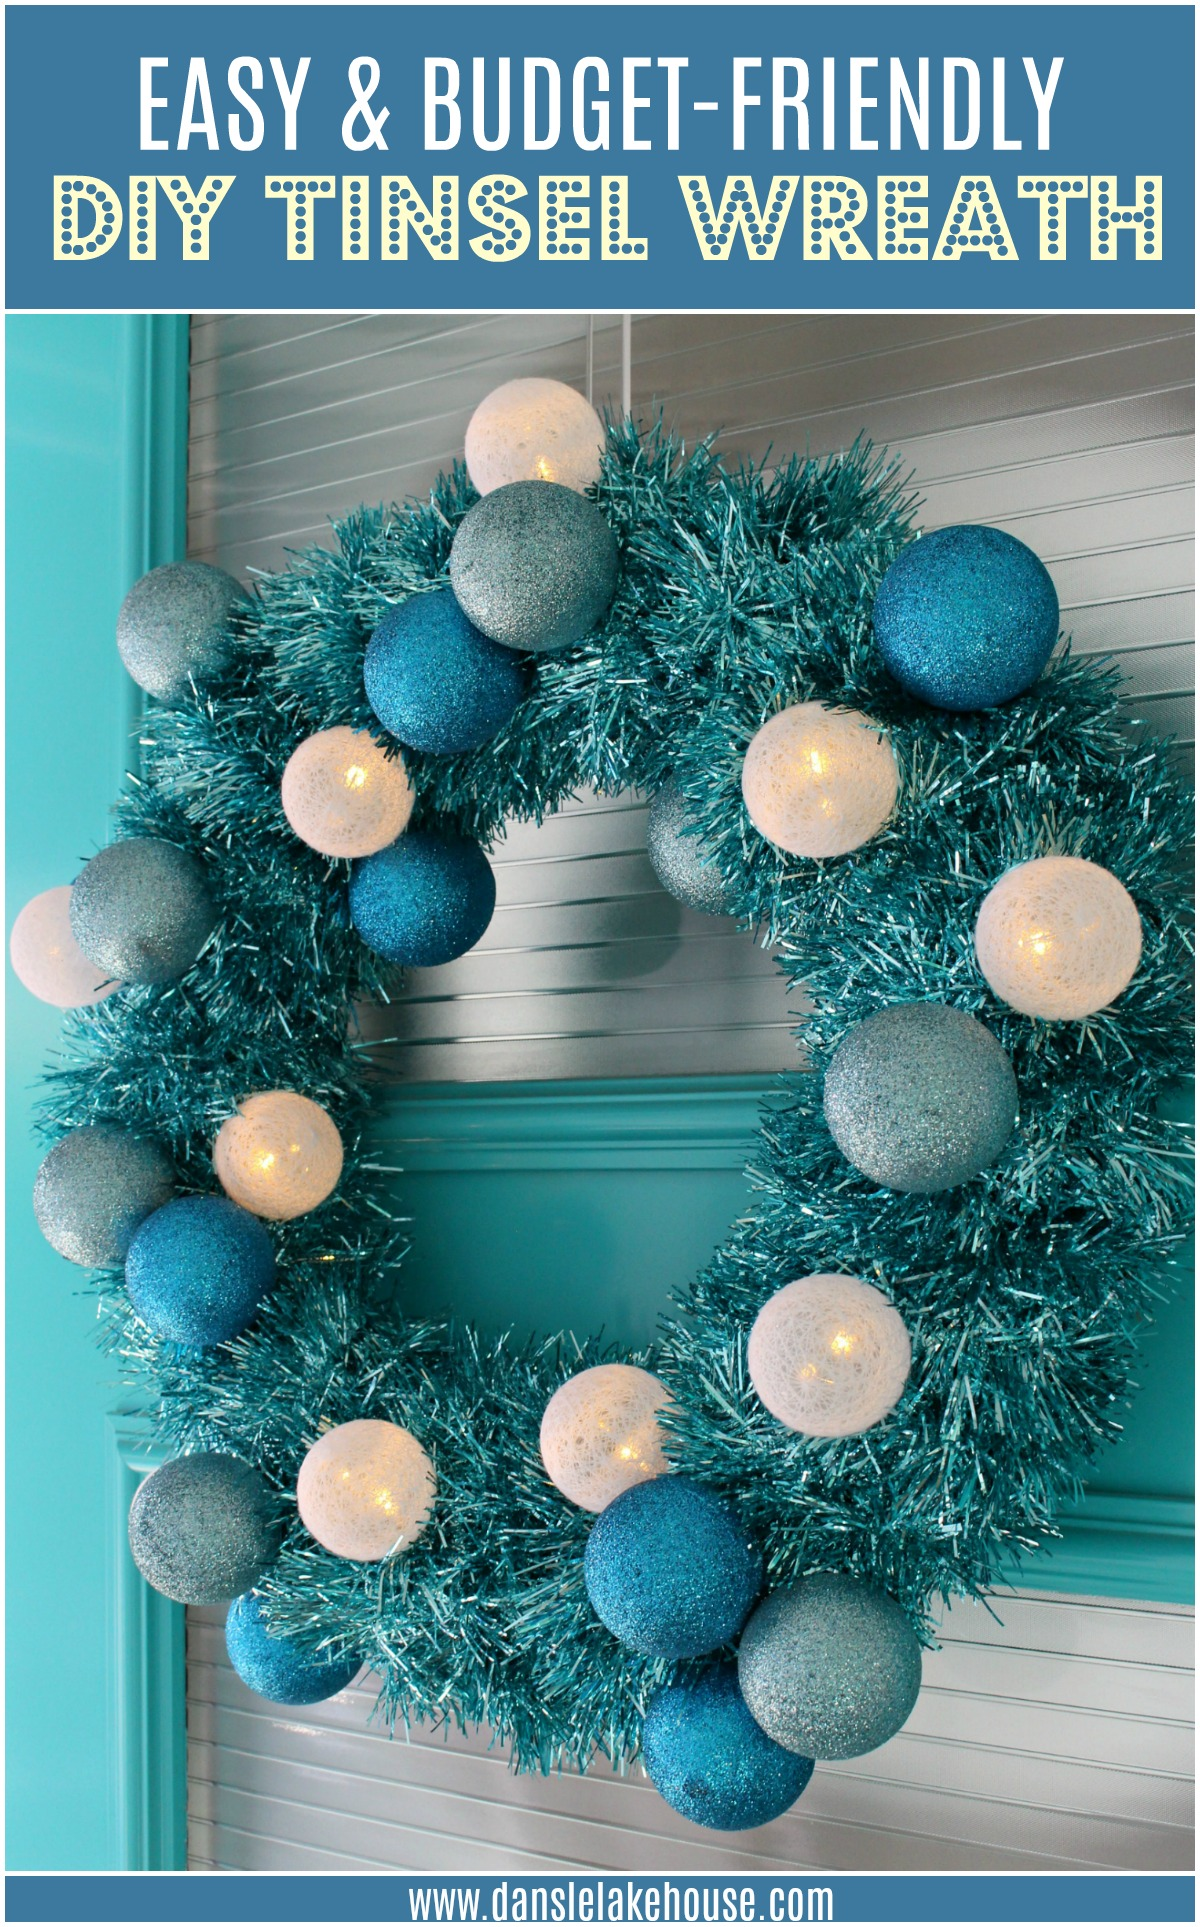 Inexpensive Dollar Store DIY Tinsel Wreath with Retro Vibes #diychristmas #tinsel #tinselwreath #retrochristmas